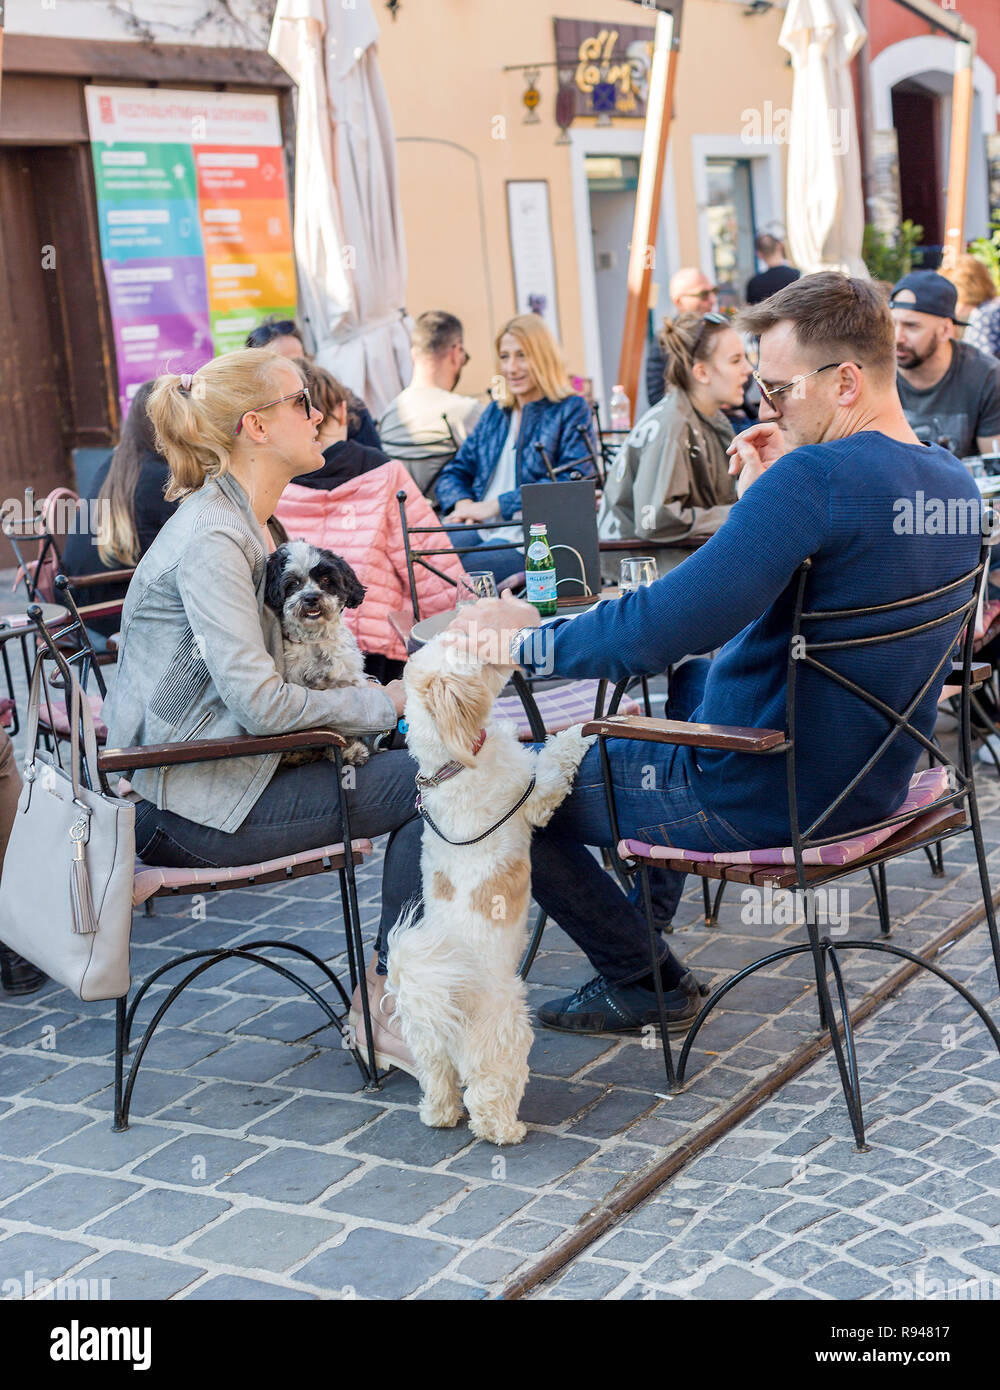 Szentendre, Hungary - April 08, 2018: Street cafe, family with dogs resting. Man's hand patting a small lap dog's head, white with red spots dog stand - Stock Image